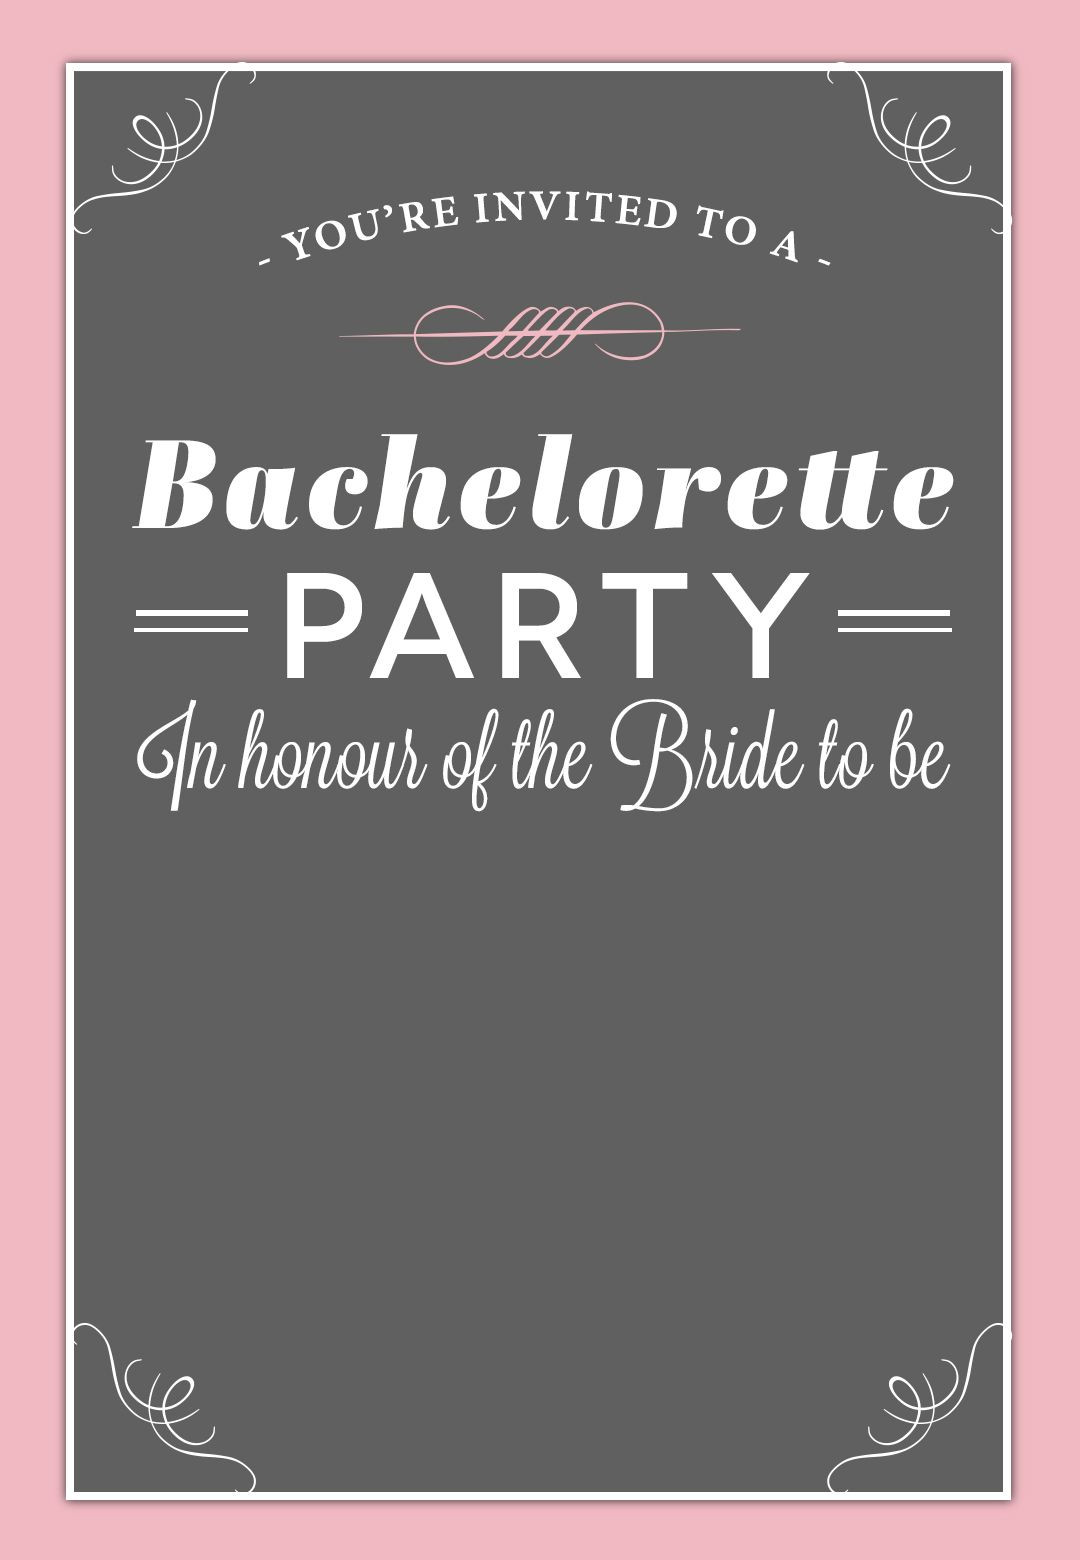 Bachelorette Party Invitation Free Printable